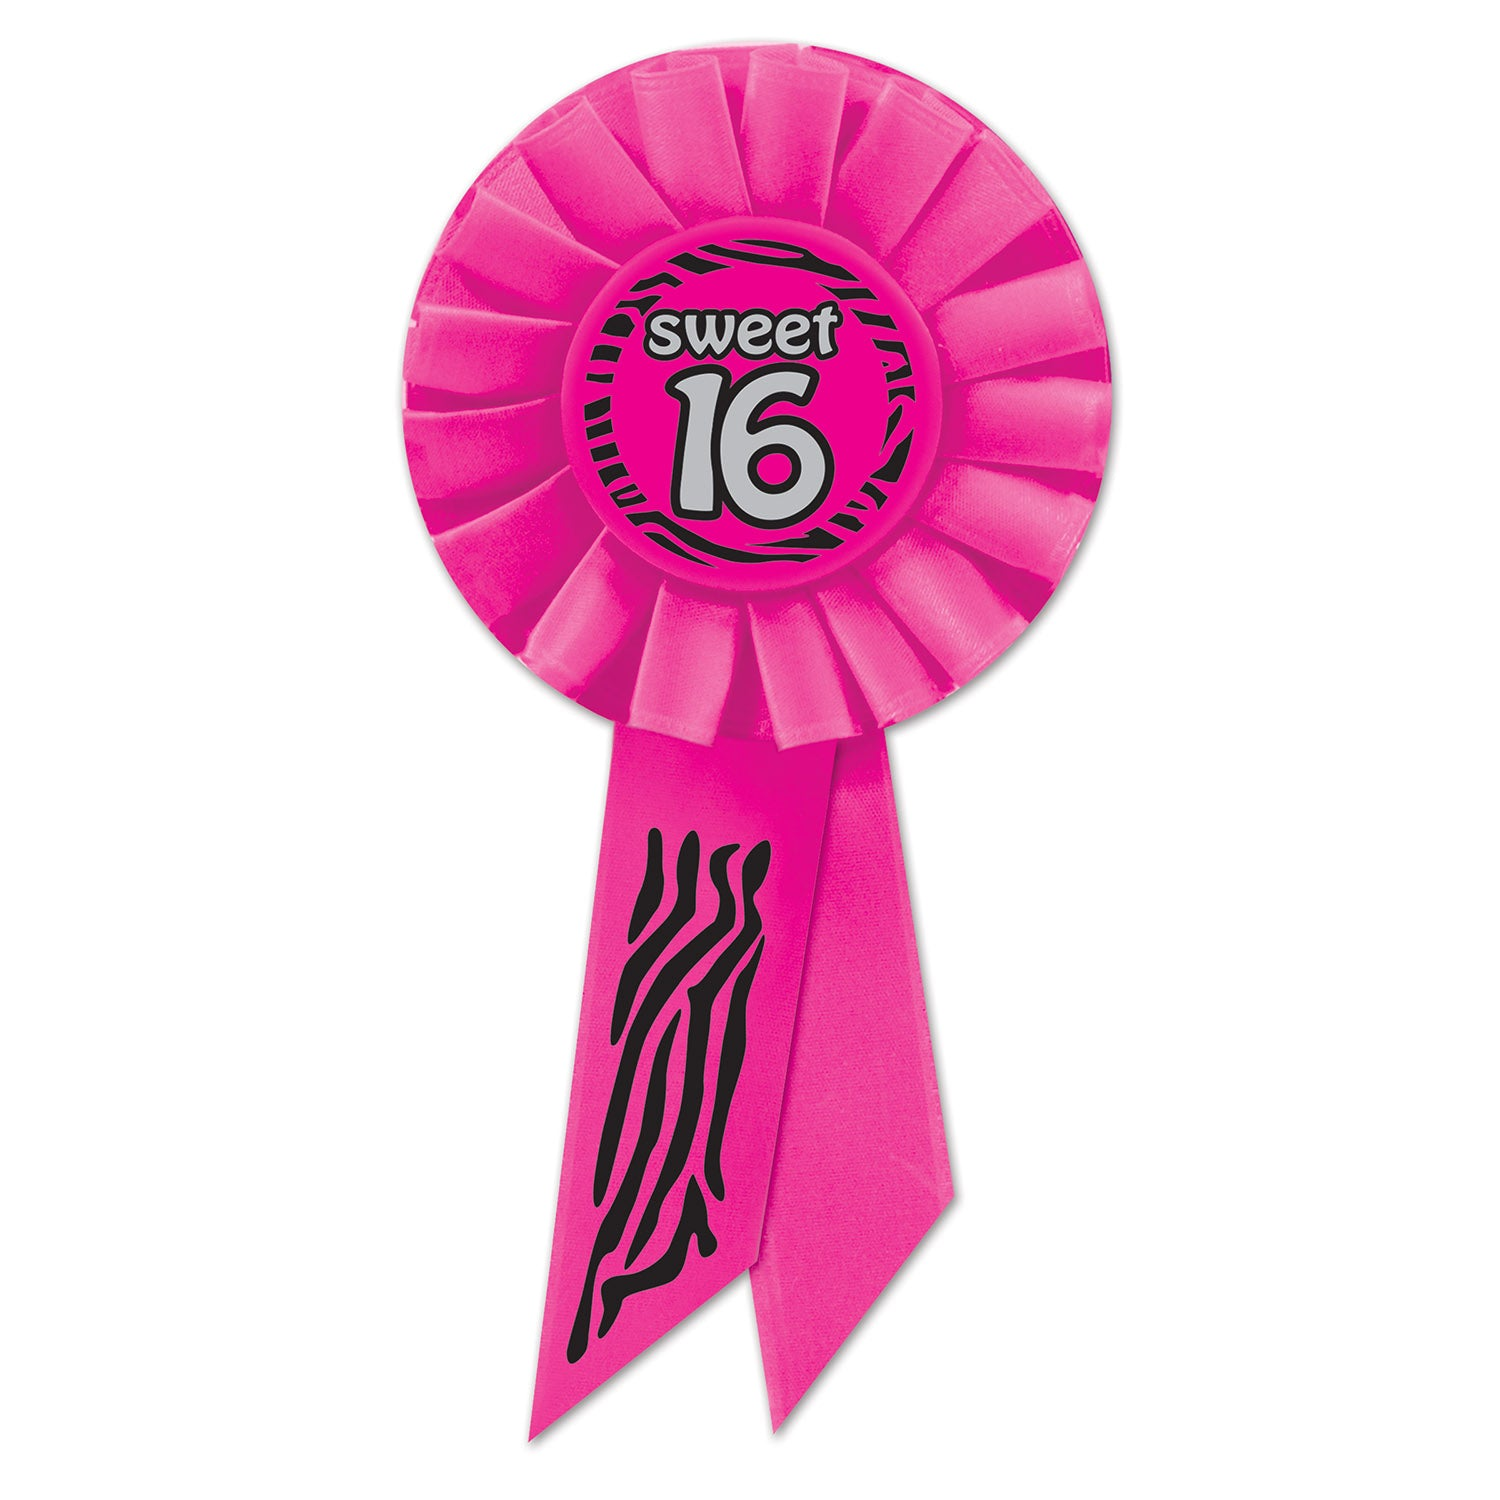 Sweet 16 Rosette by Beistle - Sweet 16 Birthday Decorations